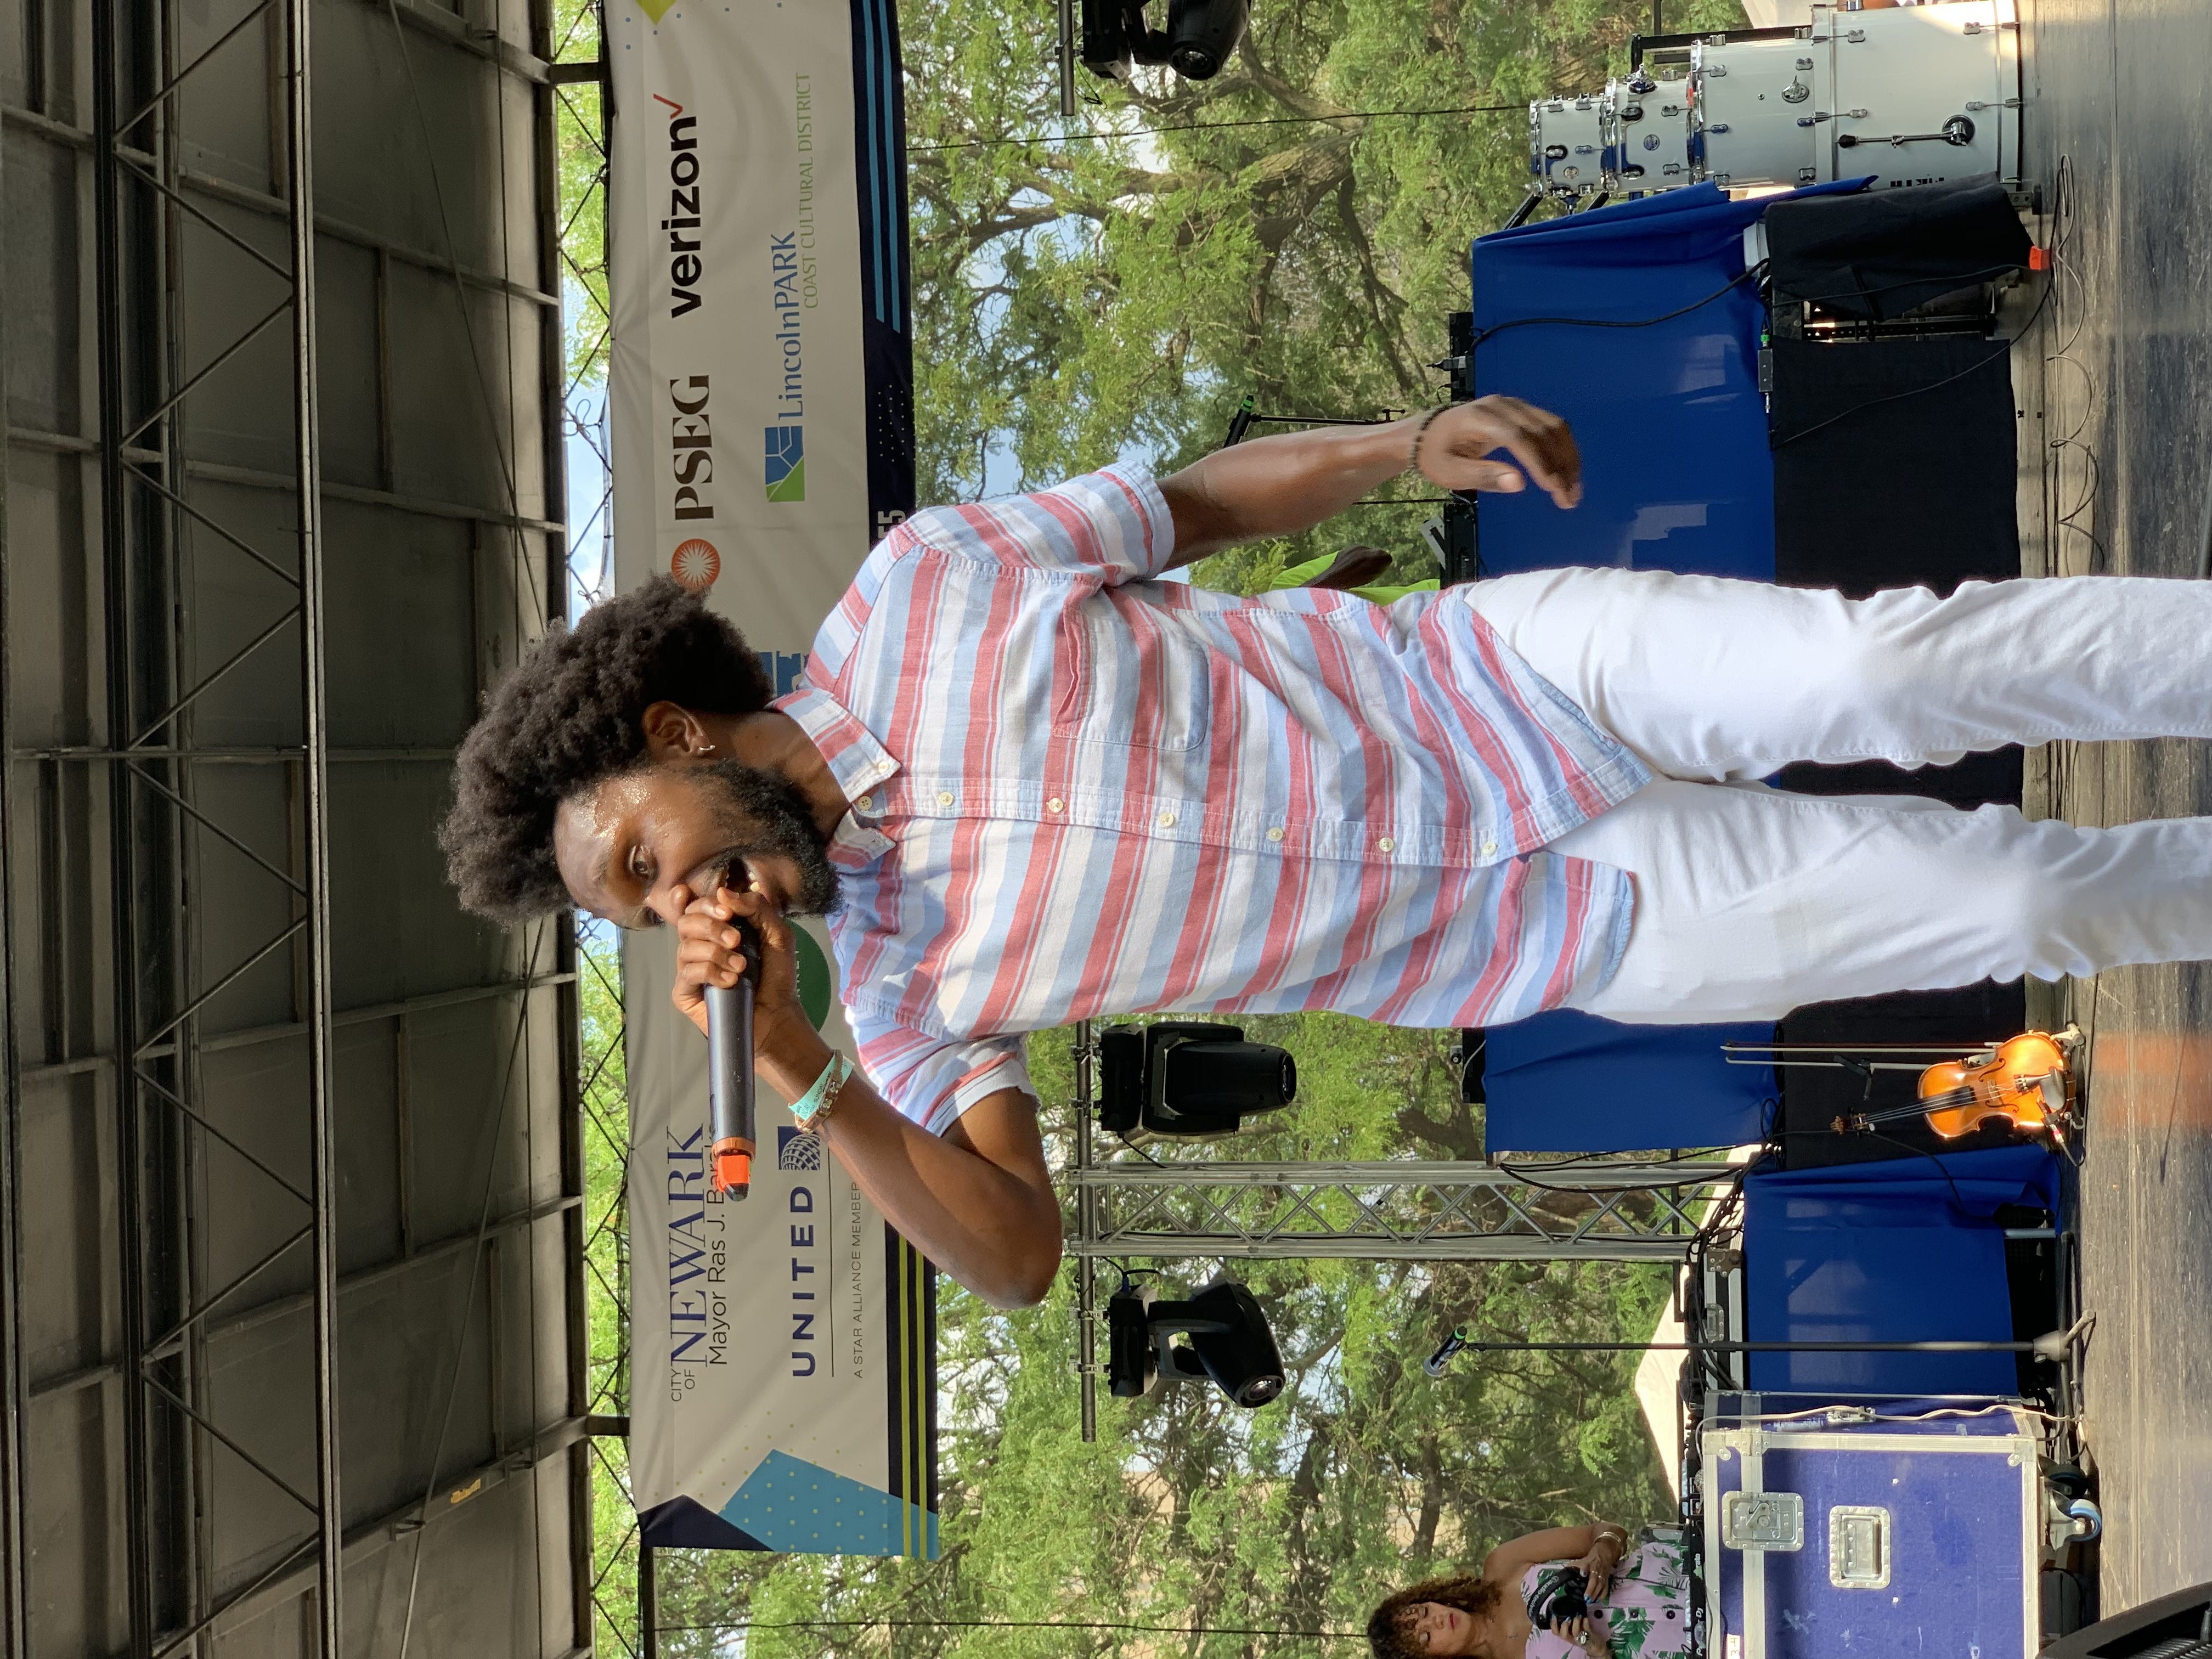 Lincoln Park Music Festival Closes Out With Surprise